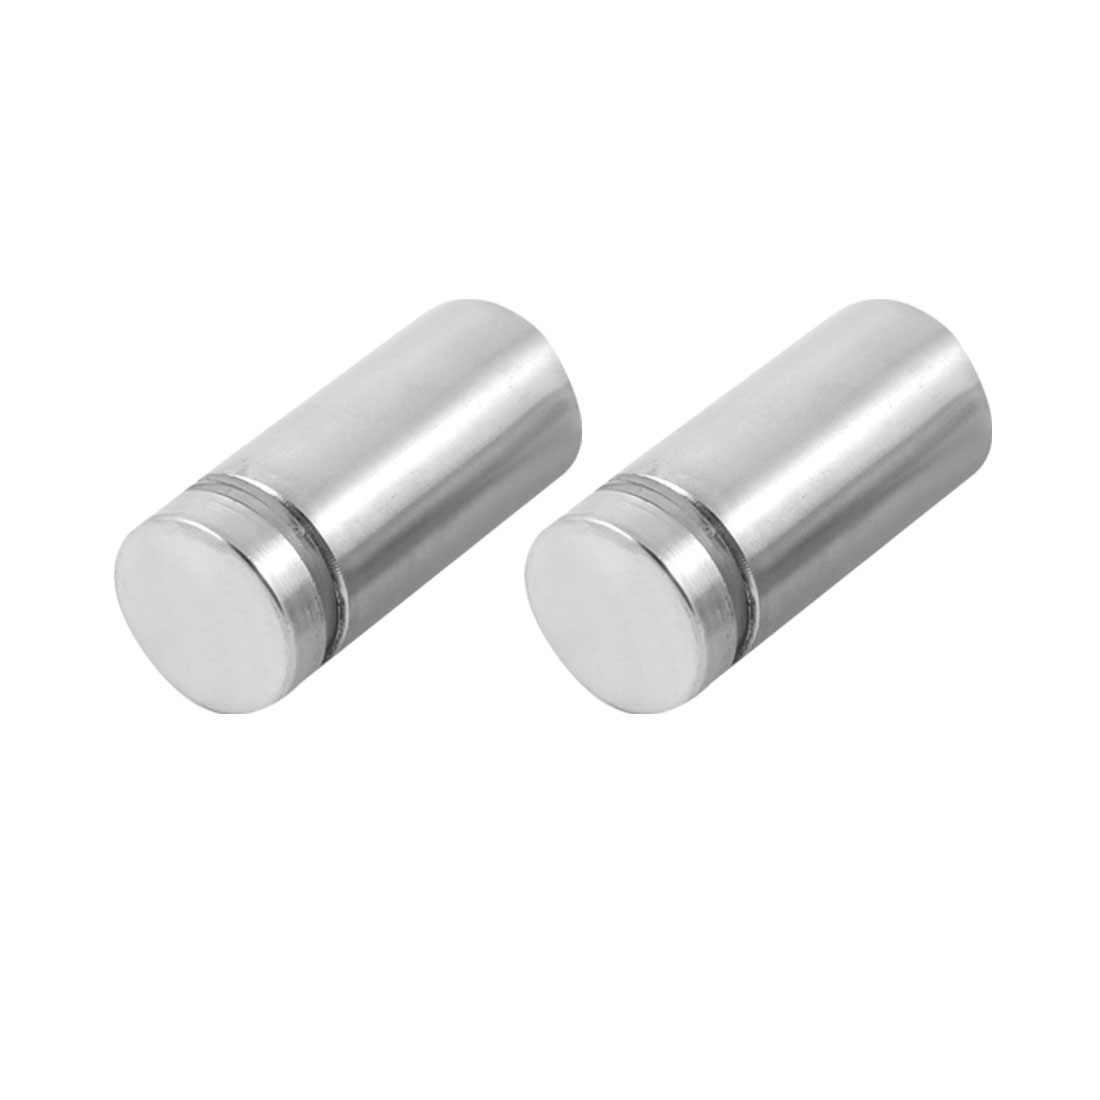 2 Pcs Silver Tone Stainless Steel 19 x 40mm Standoff Hardware for Glass